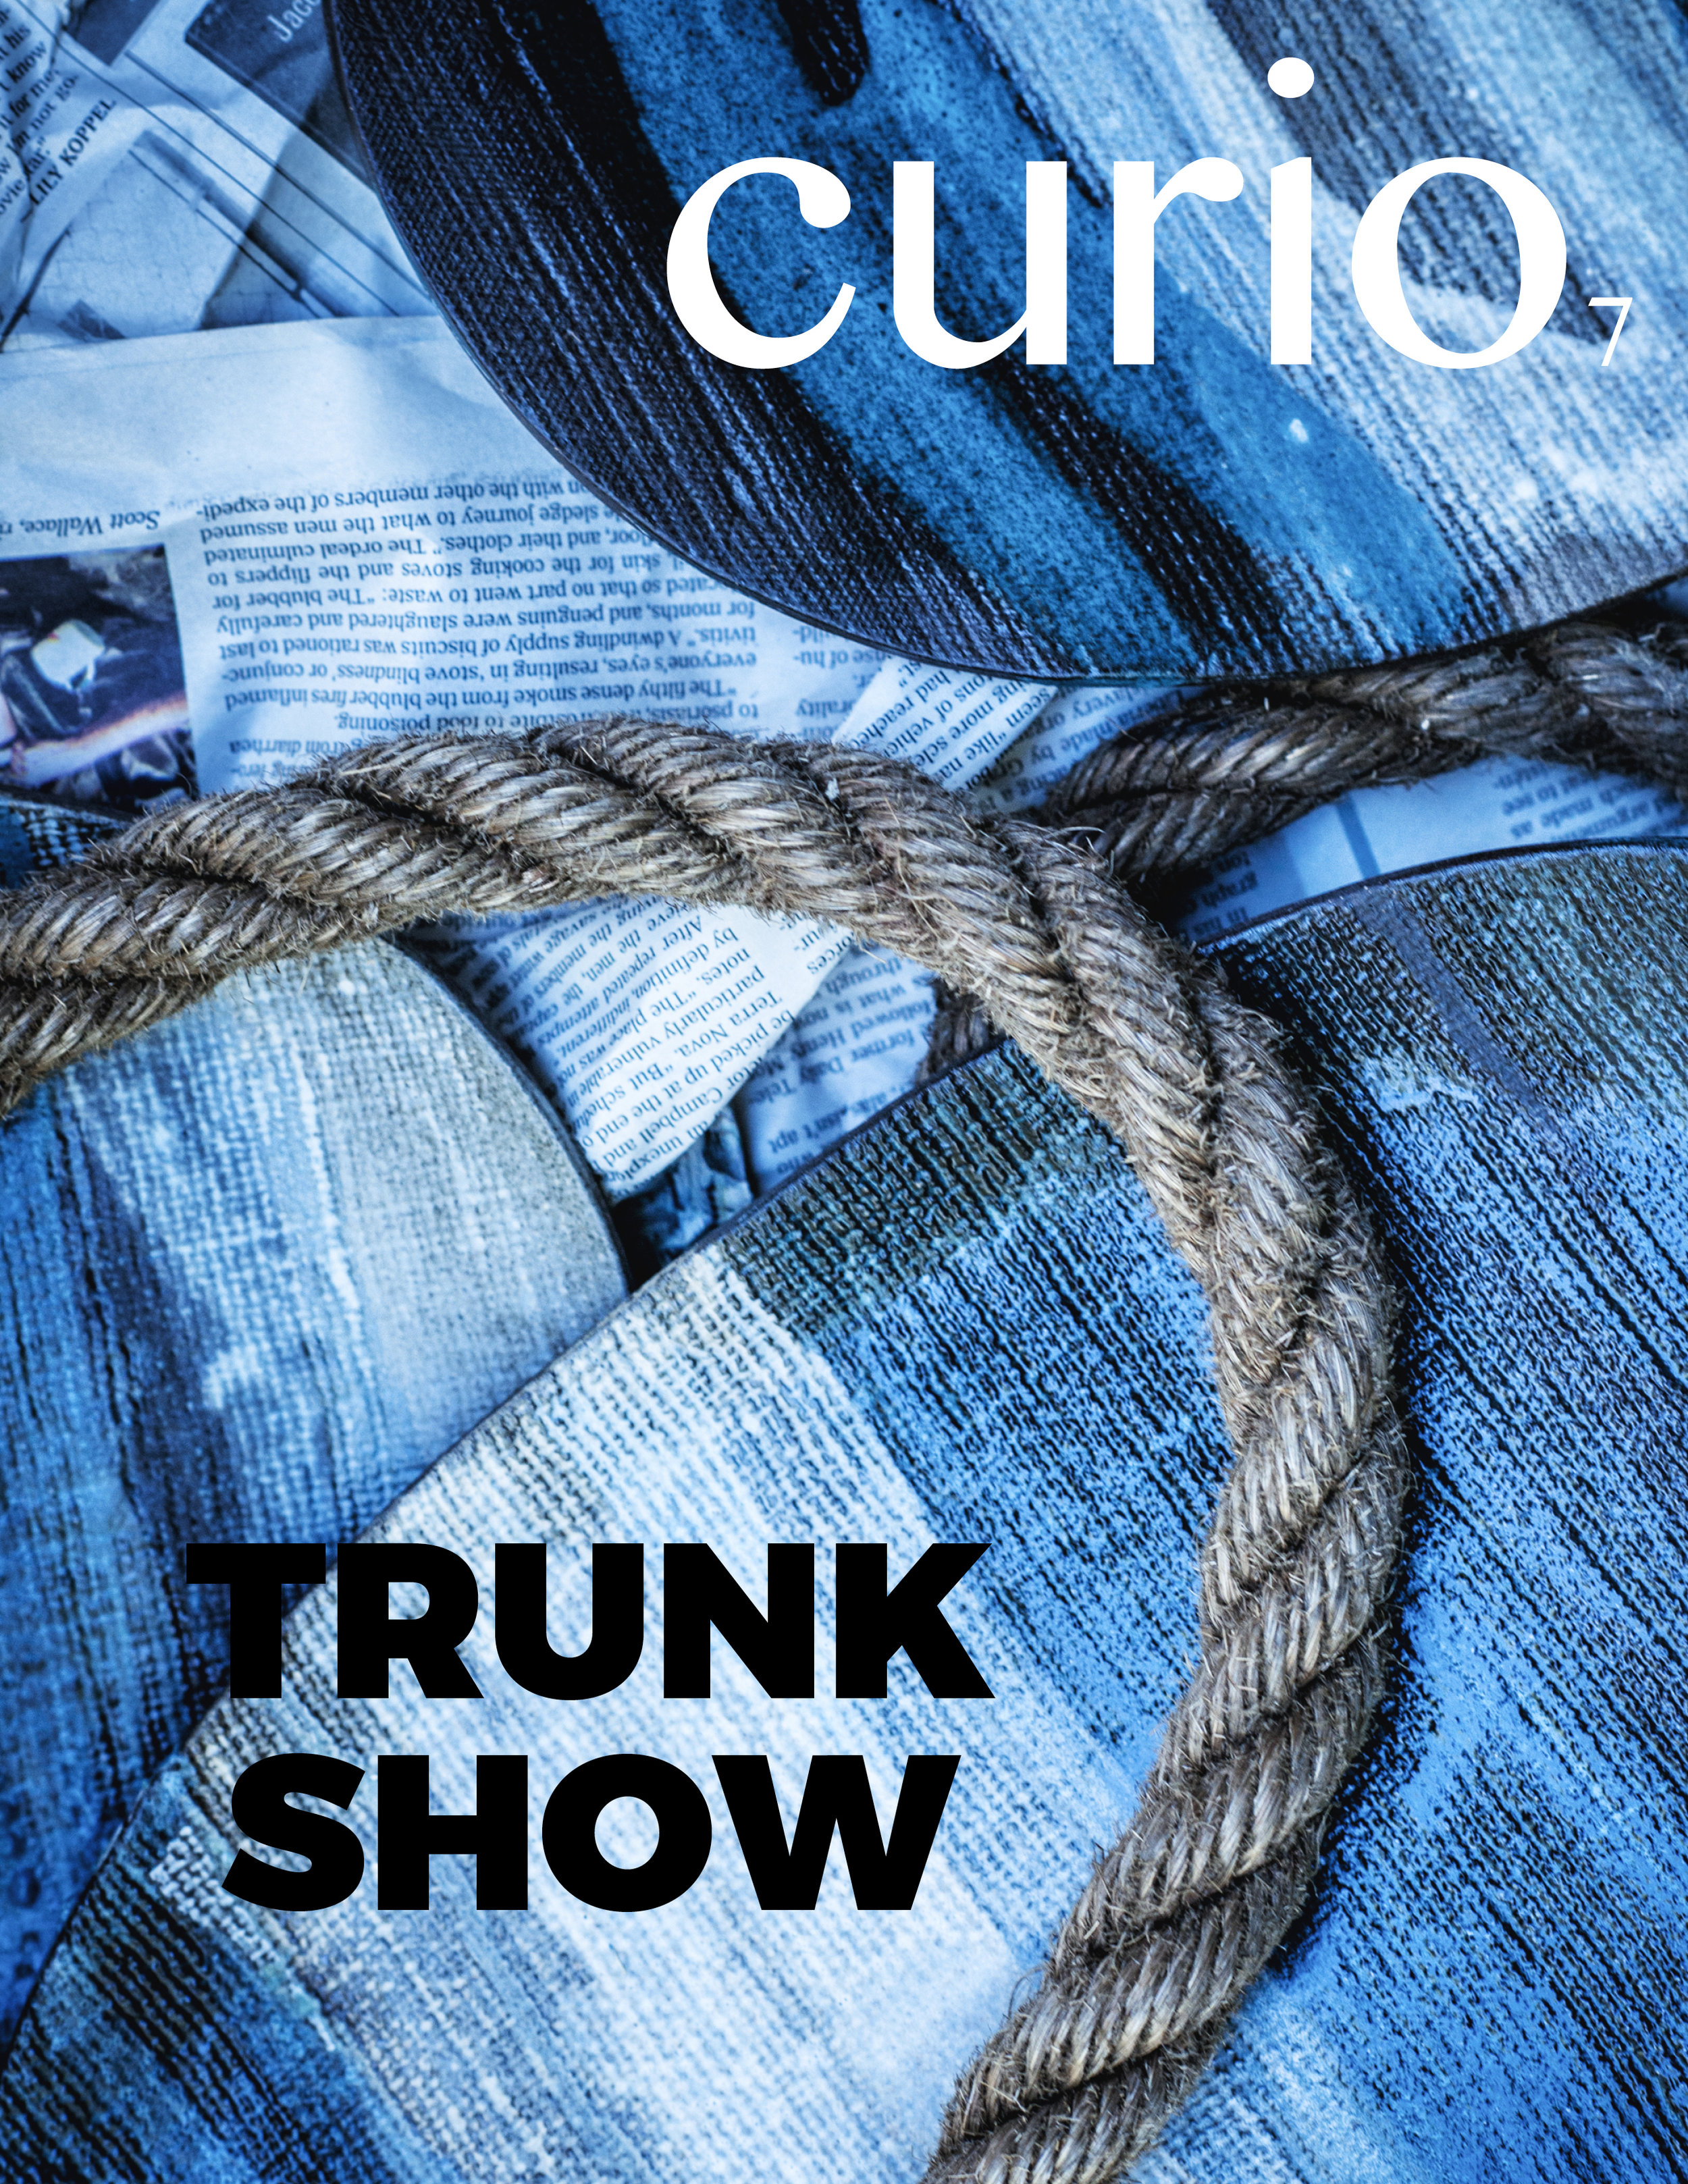 ISSUE 7: TRUNK SHOW